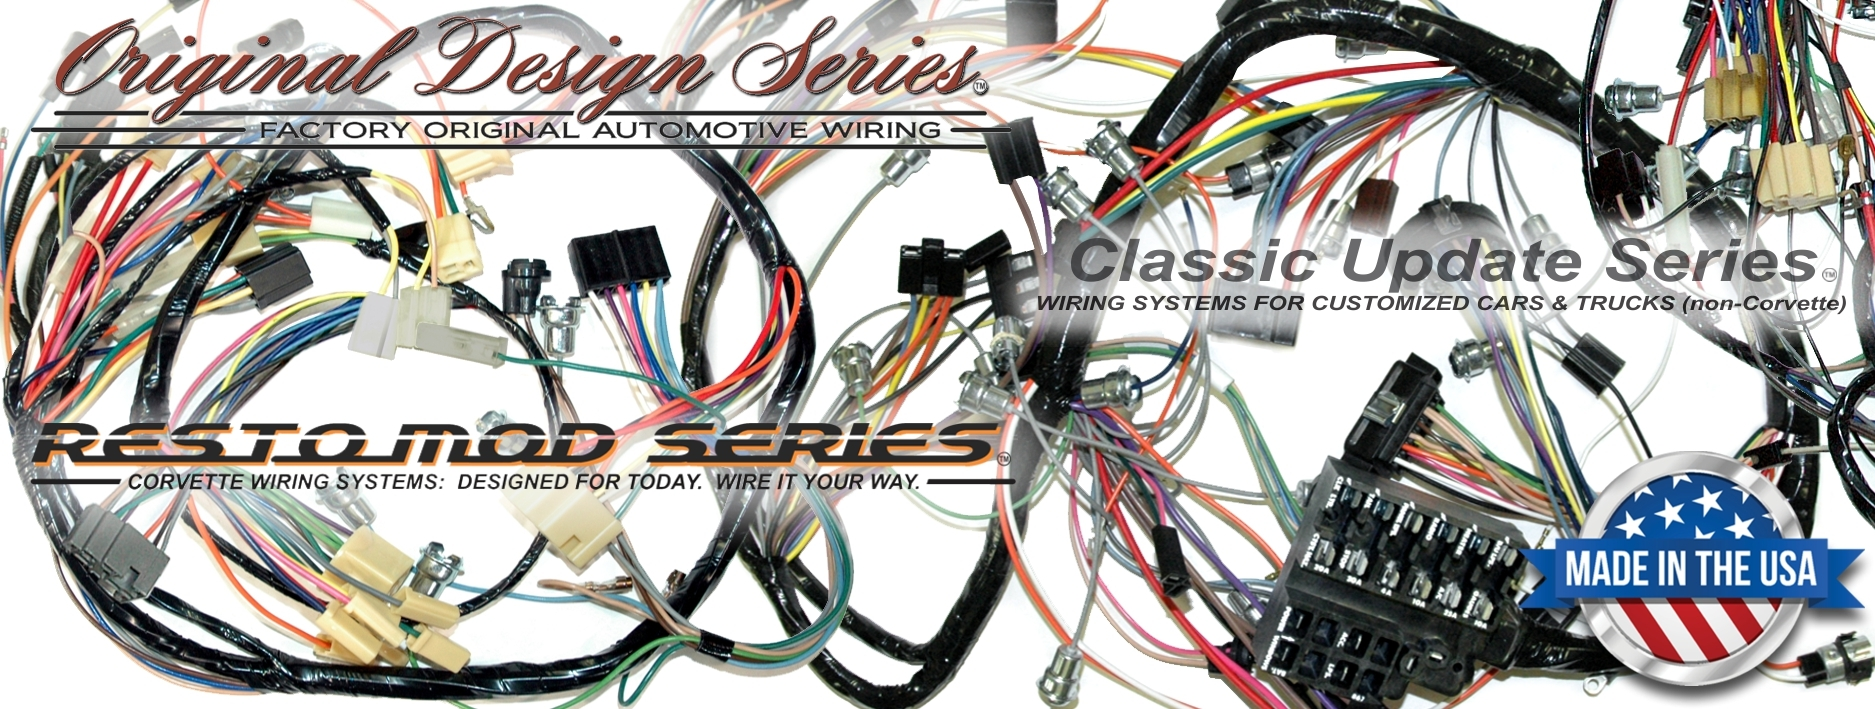 new header wiring_harnesses exact oem reproduction wiring harnesses and restomod wiring wiring harness for cars at aneh.co